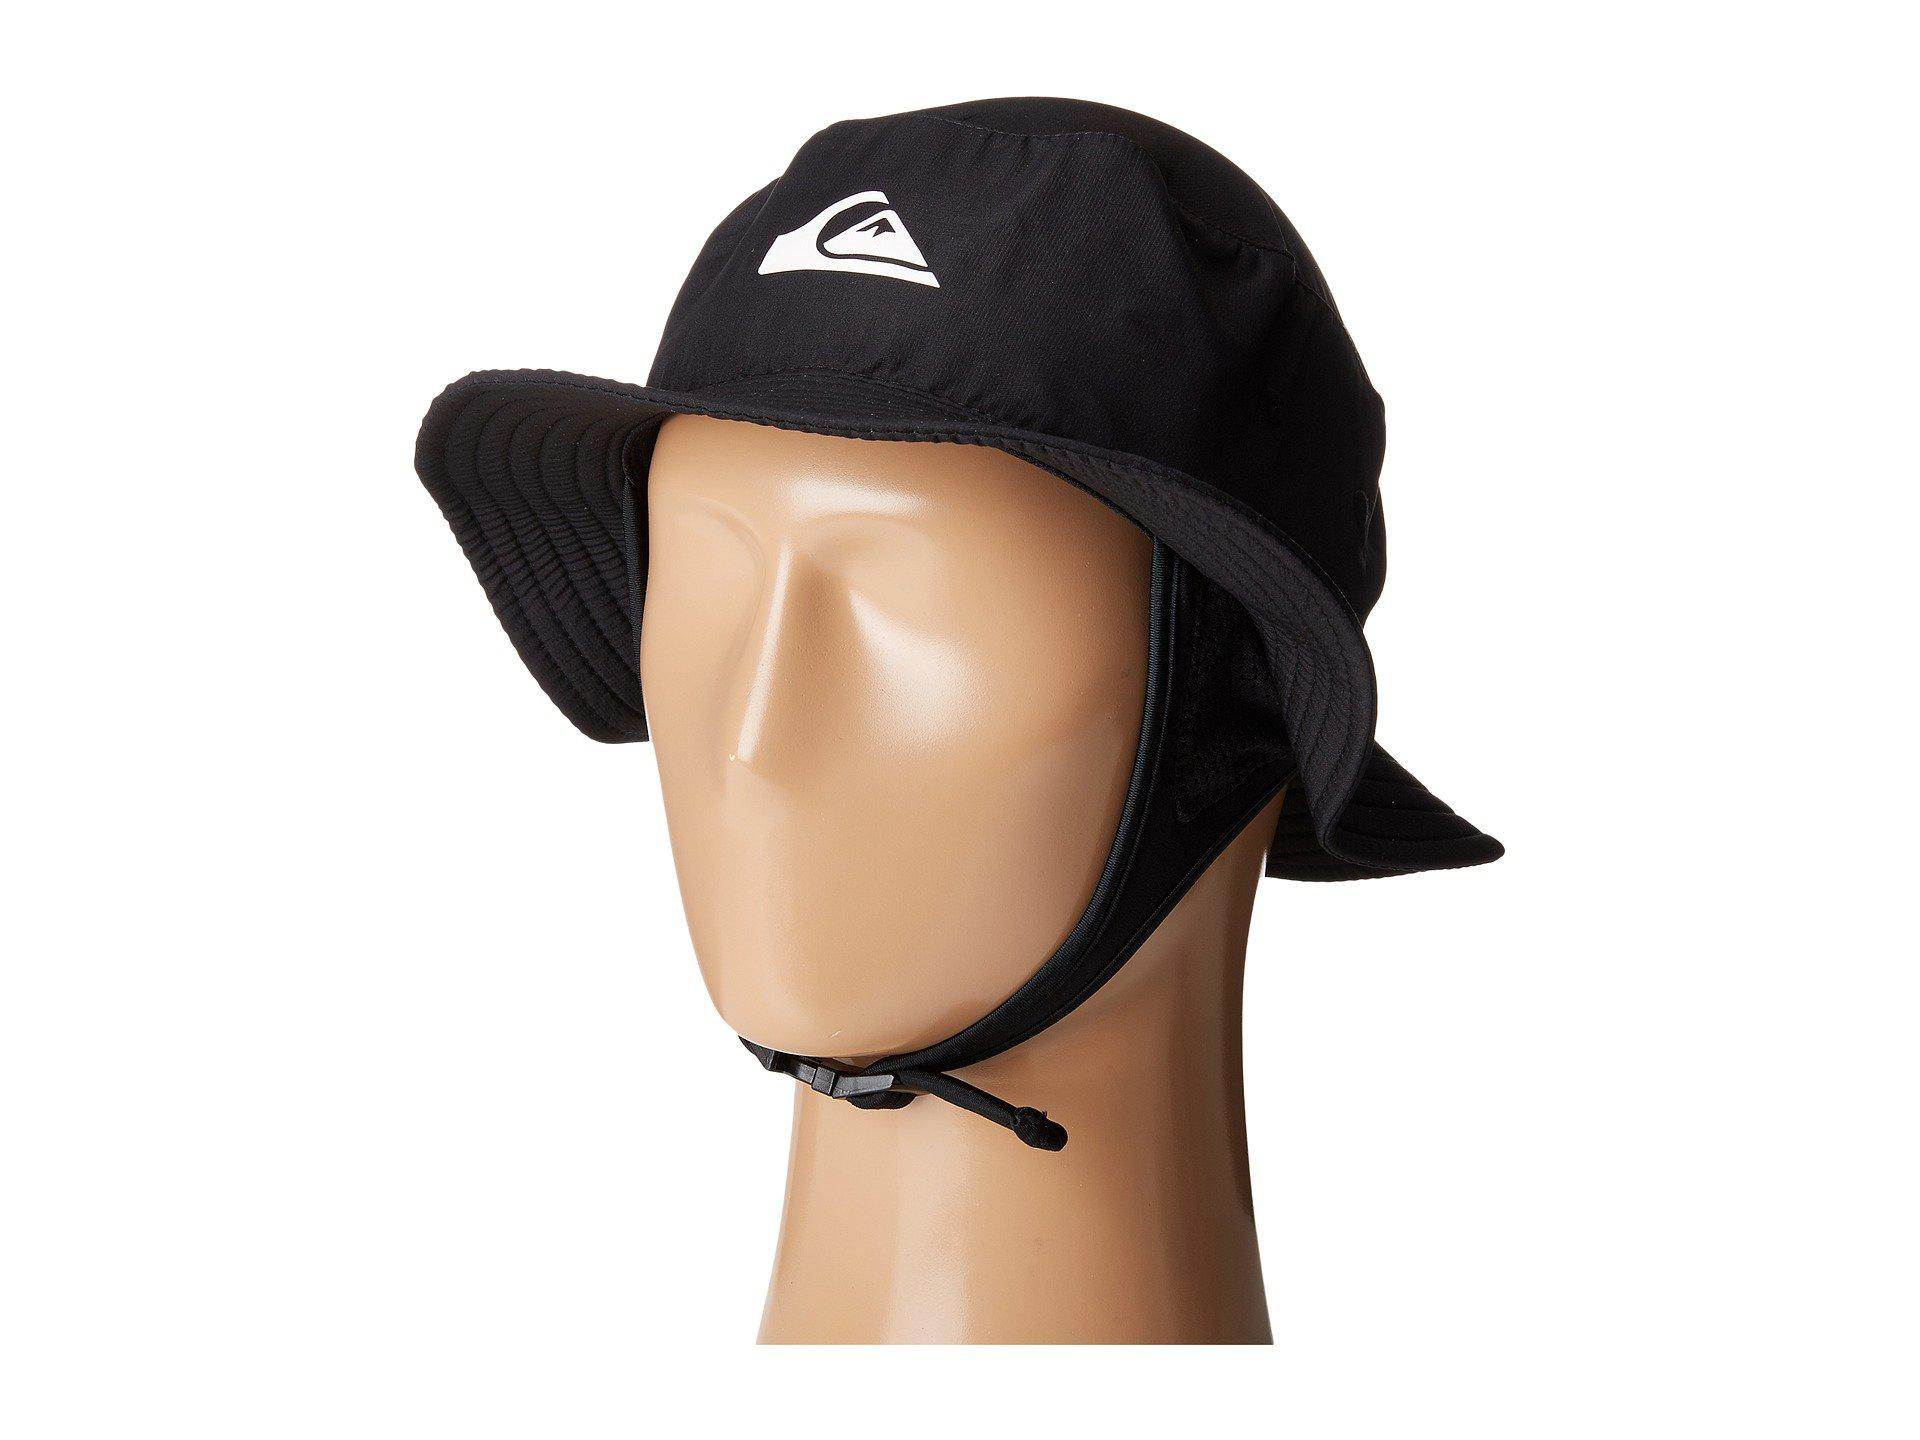 Lyst - Quiksilver Bushmaster Surf Hat (black) Bucket Caps in Black ... f8a6b860301d